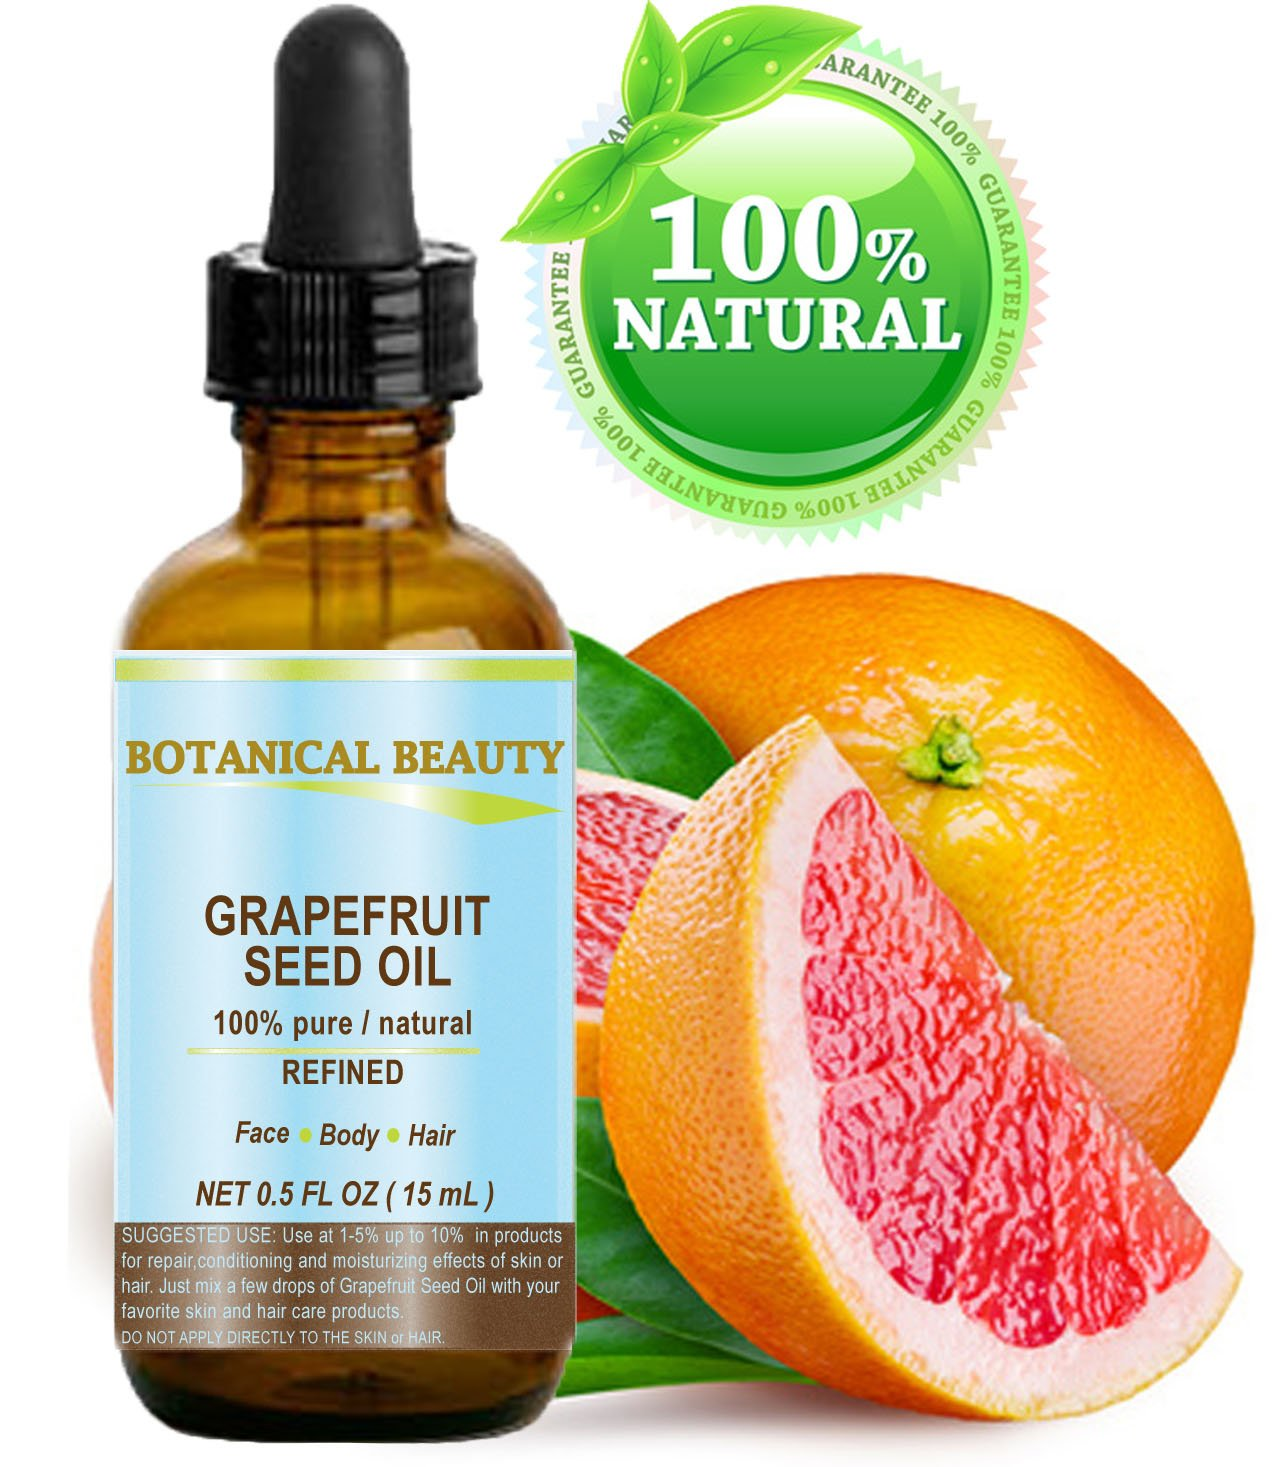 "Botanical Beauty GRAPEFRUIT SEED OIL. 100% Pure / Natural / Undiluted /Refined Cold Pressed Carrier Oil. 0.5 Fl.oz.- 15 ml. For Skin, Hair And Lip Care. ""One Of The Richest Natural Sources Of Vitamin A ,C & E And Natural Fruit Enzymes."""